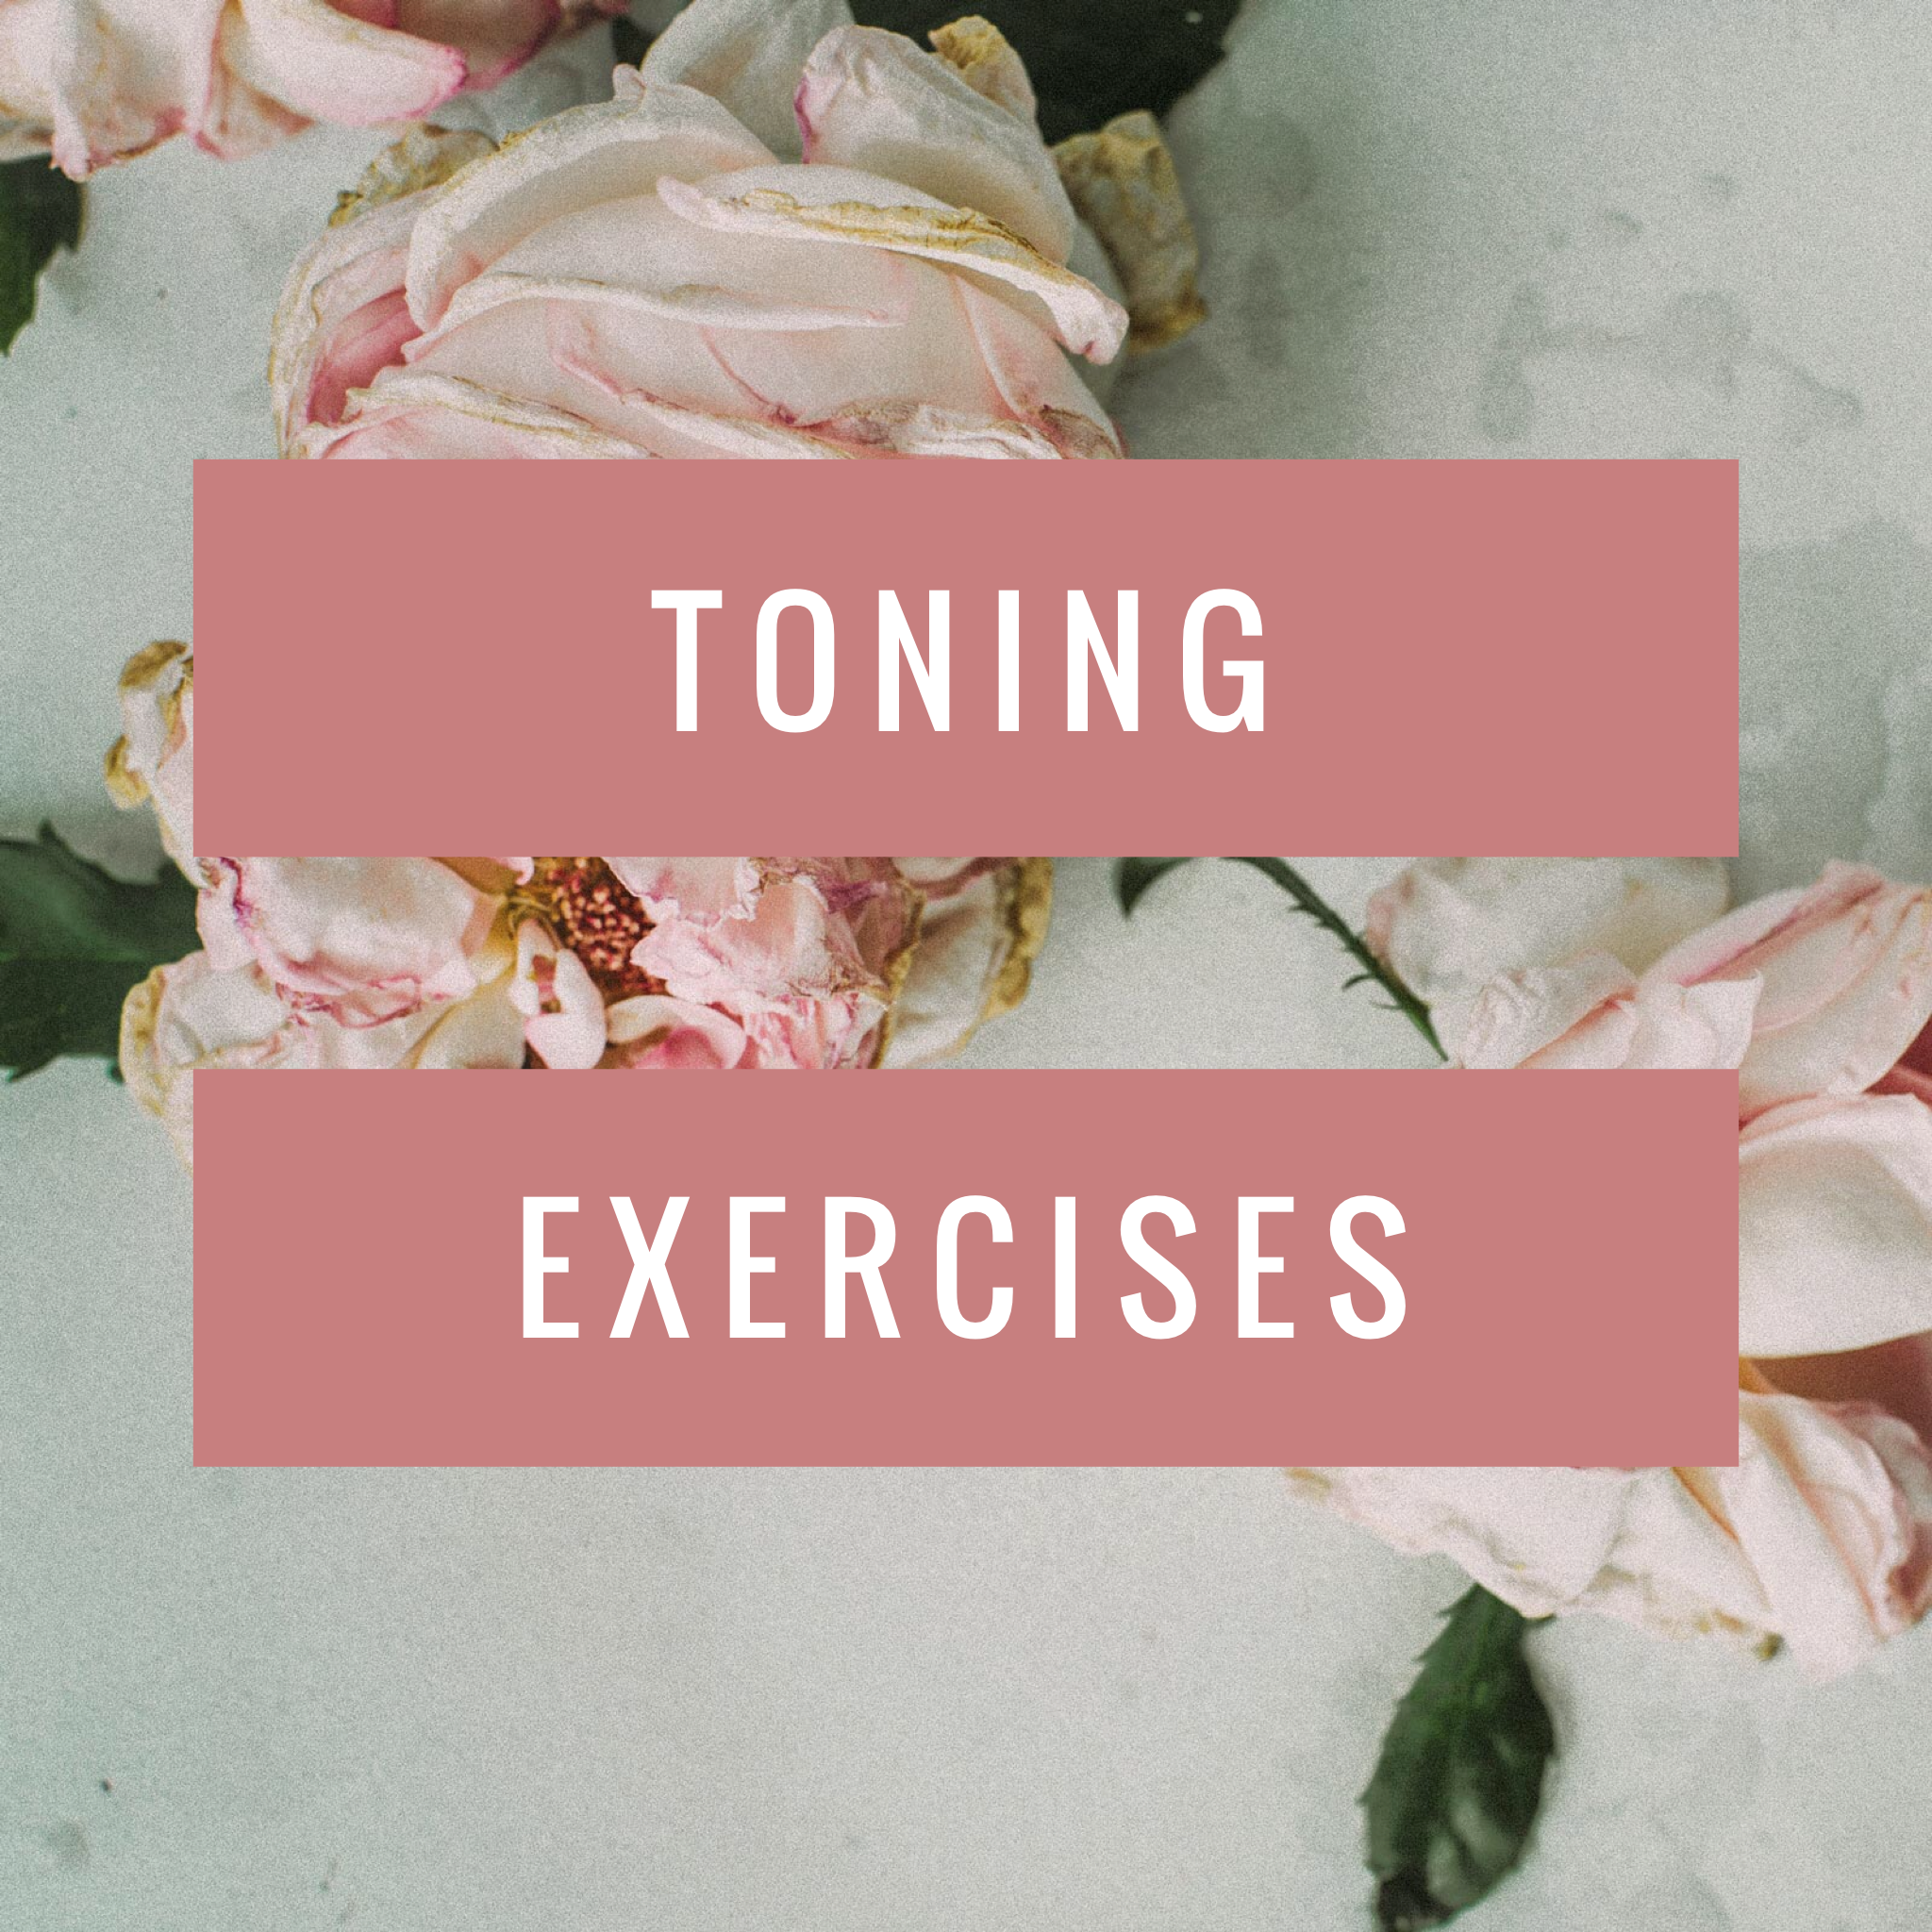 Pin by Happily Heather Goods on Toning Exercise Ideas | Pinterest ...